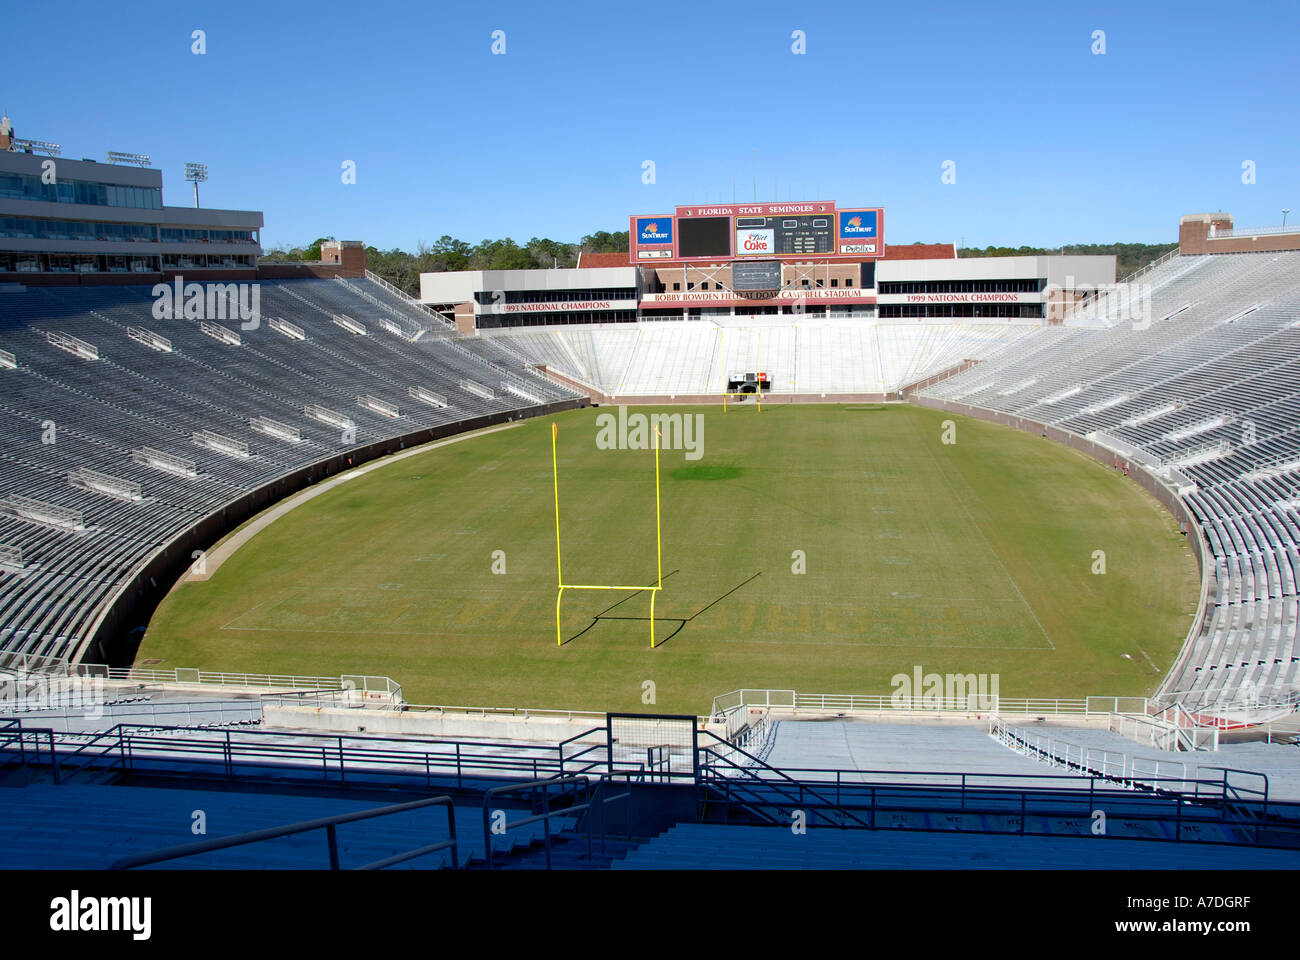 Doak S Campbell Football Stadium and Visitor Center on the Florida State University Campus Tallahassee Florida FL Seminoles - Stock Image